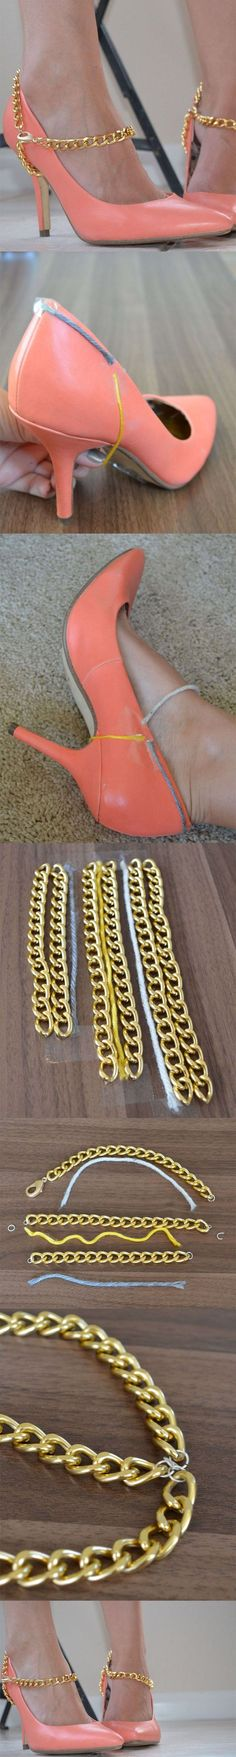 DIY: Jewelry Chains